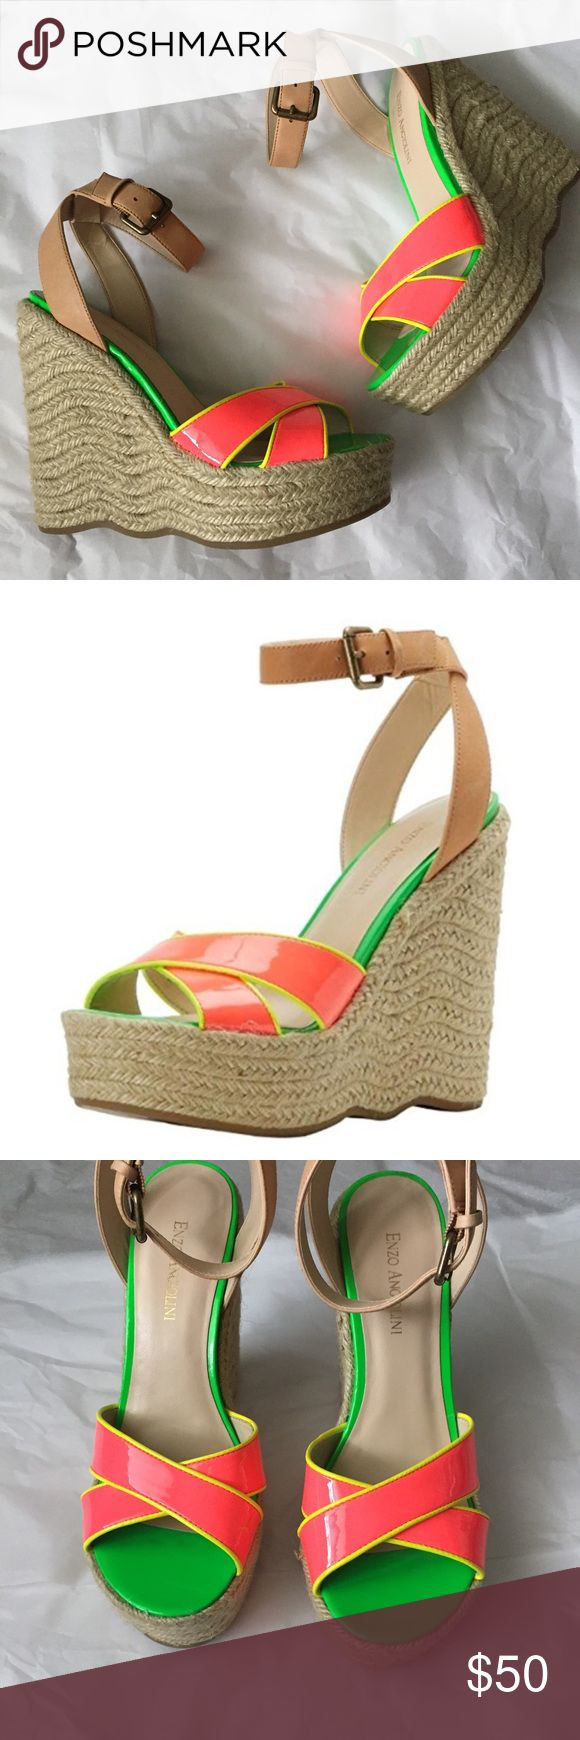 Enzo Angiolini Neon Sandals! Enzo Angiolini wedge Sandals! New without tags! Leather uppers! So Bright for spring and summer! Neon Pink, yellow and Green! Very vibrant in person! Adjustable ankle strap! Size 8.5 wedge heel 5.5 inches. Platform 1.5 inches! Enzo Angiolini Shoes Sandals